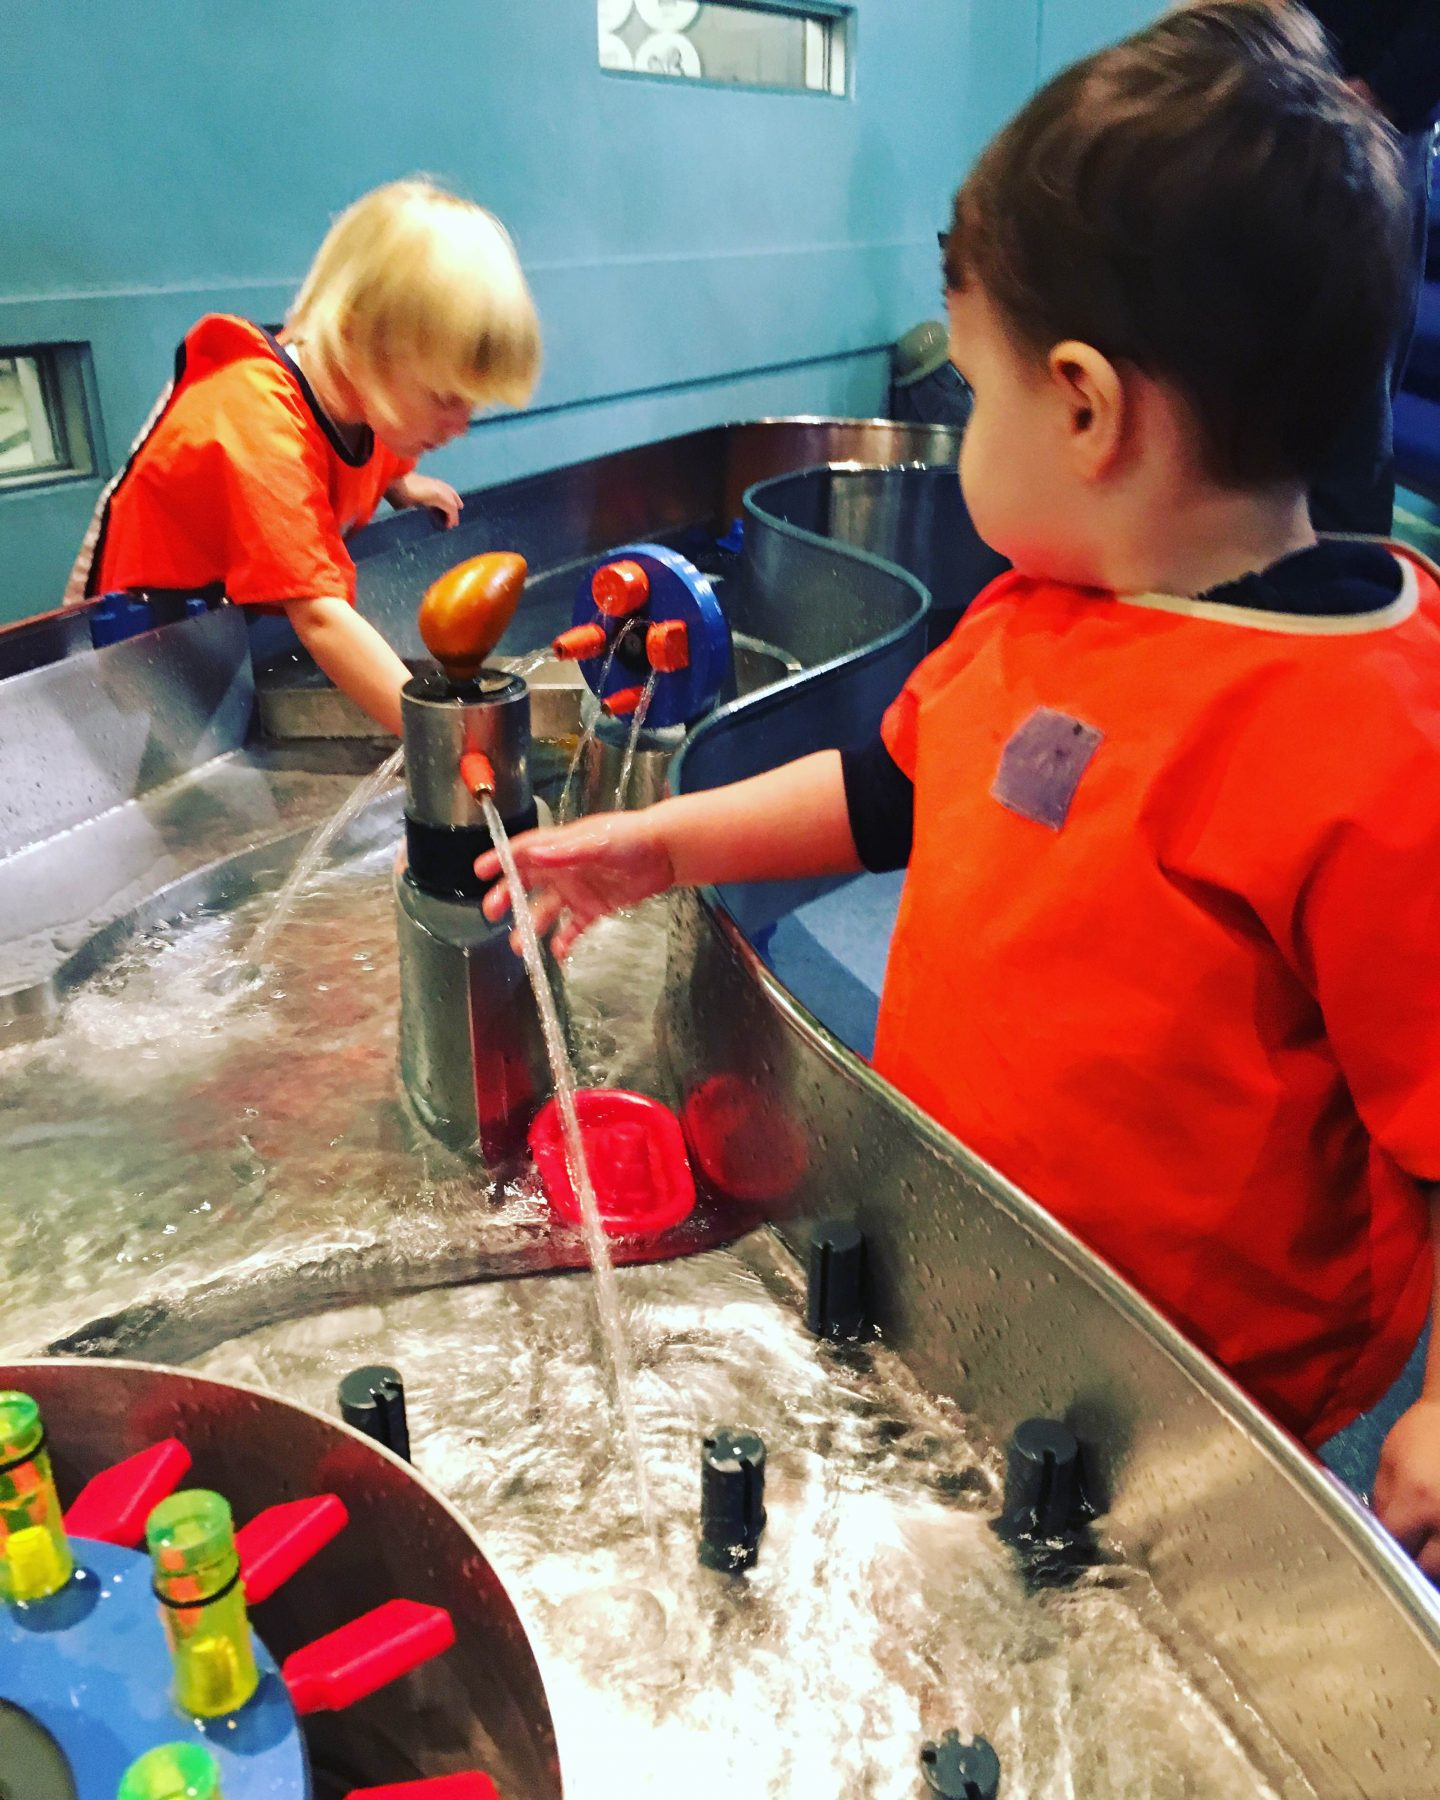 The Science Museum in London: top tips before visit